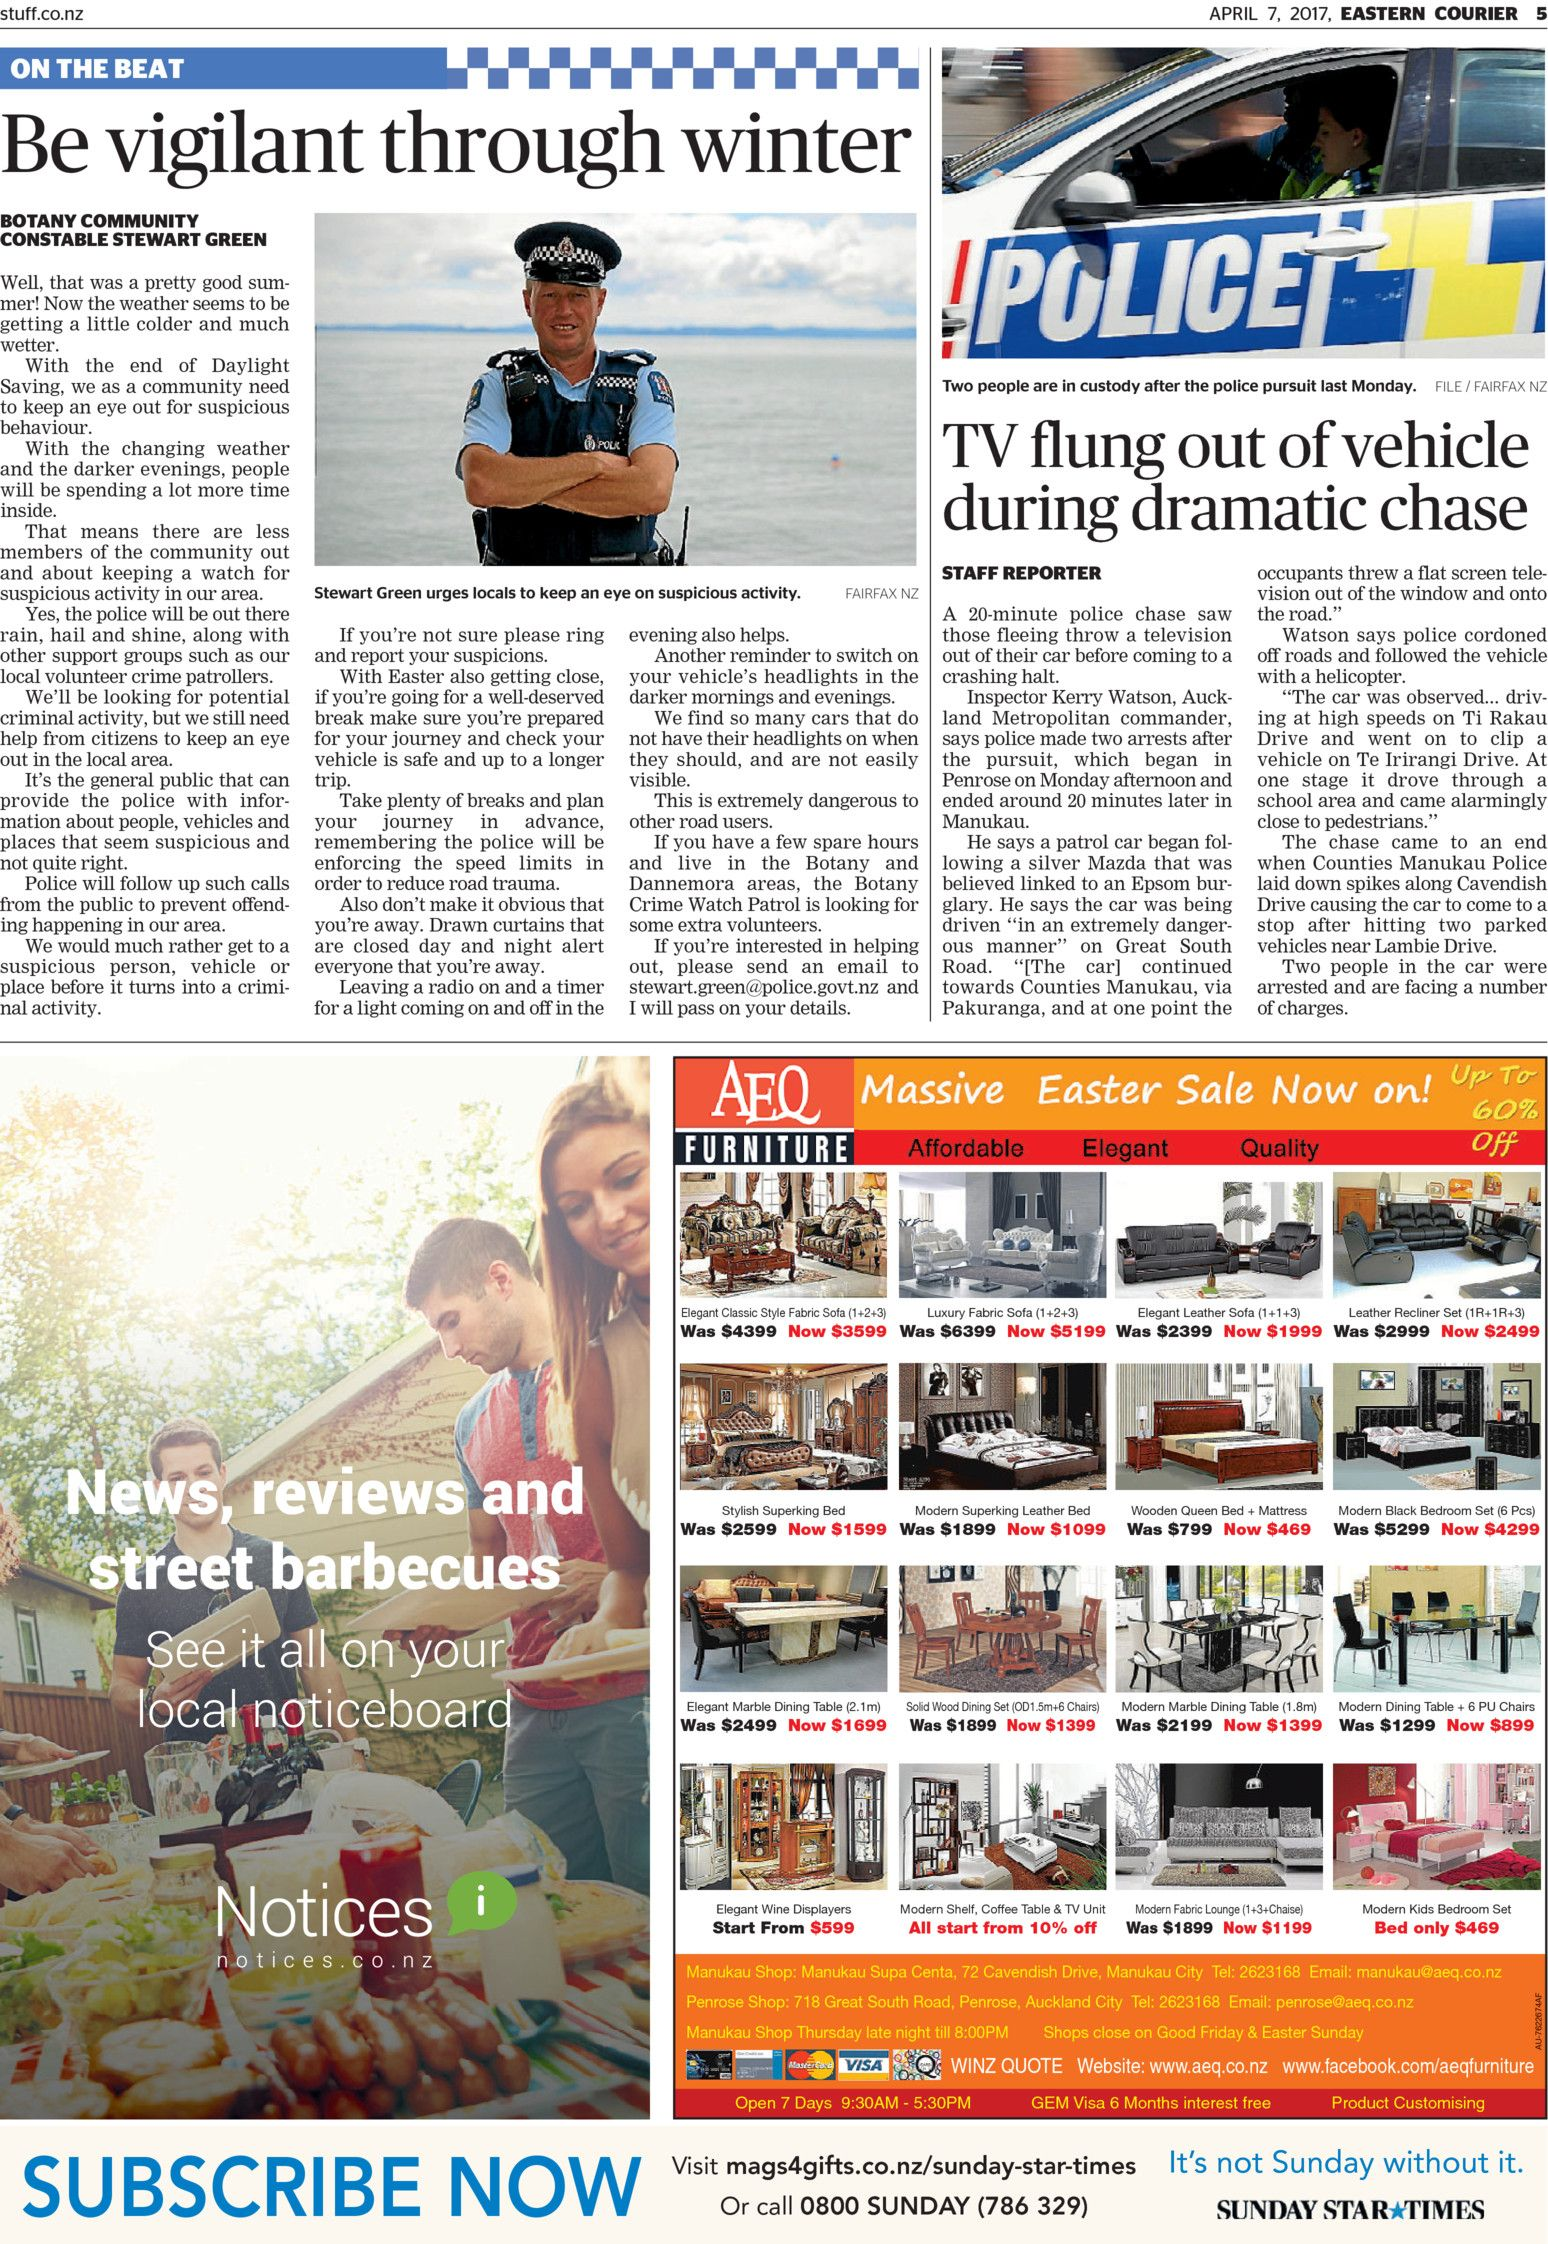 Eastern Courier Read online on Neighbourly